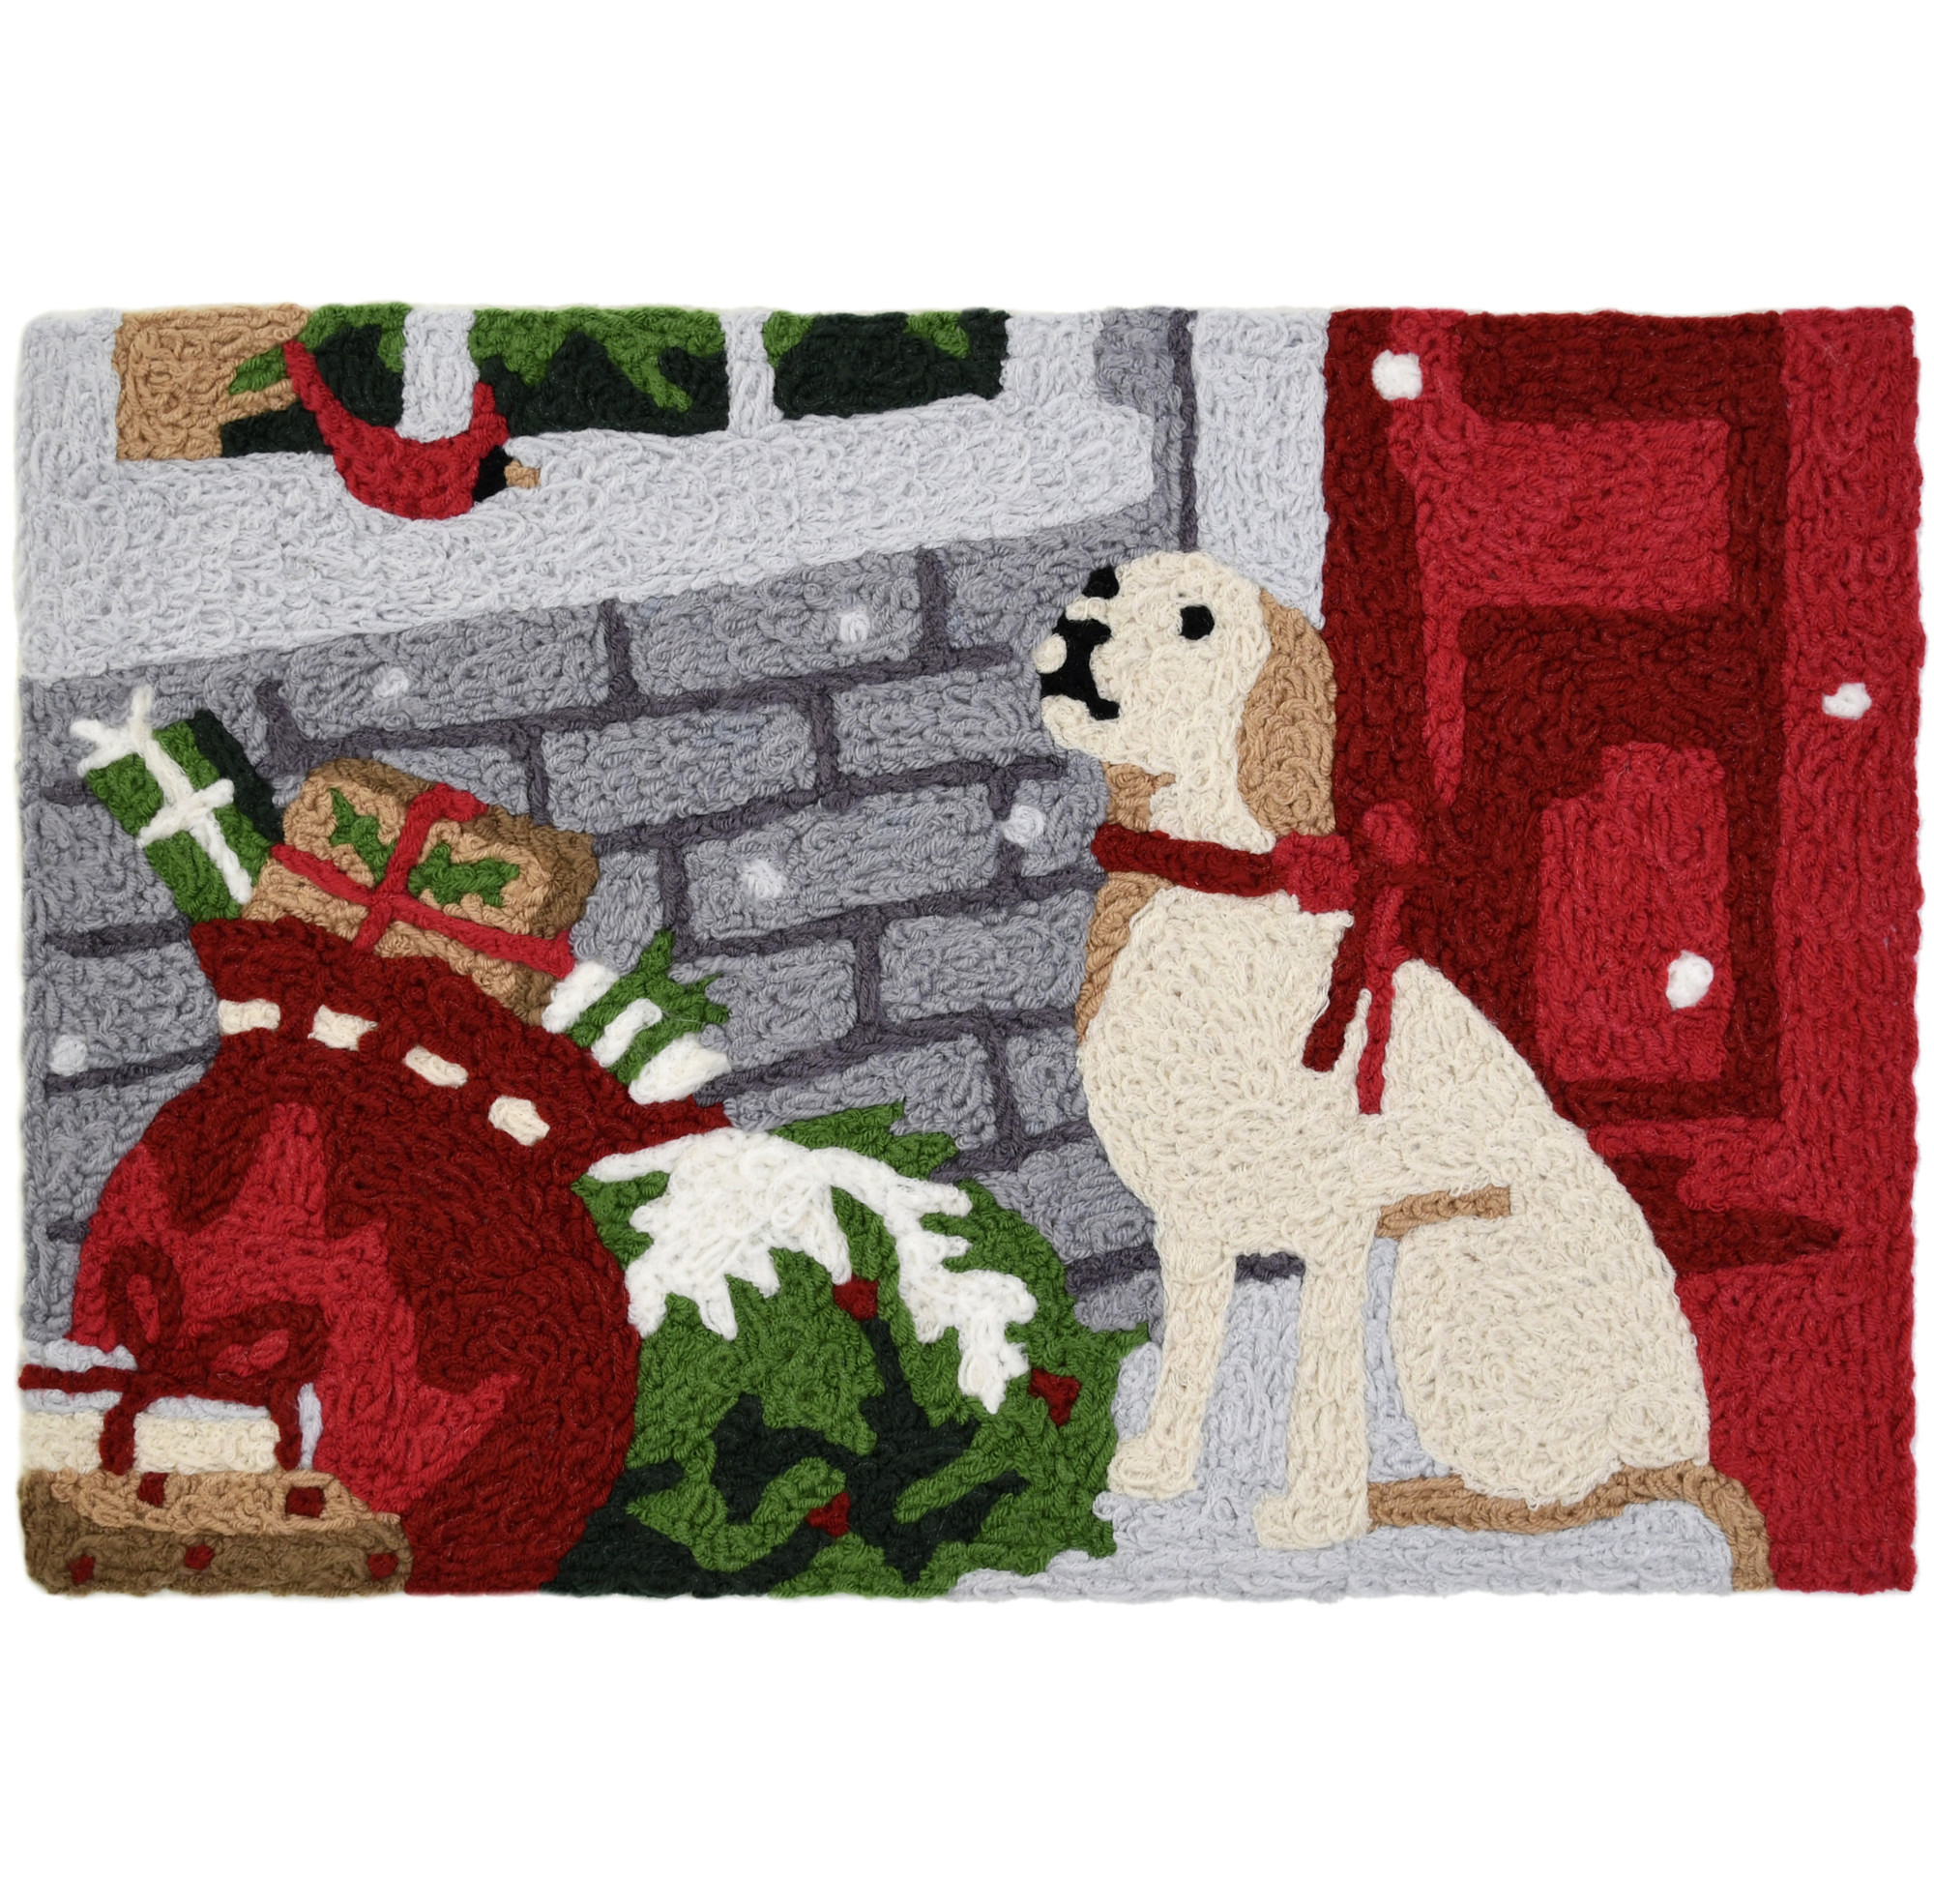 Lab With Presents Christmas Rug w/ Dog 20 x 30 Jellybean Accent Rug